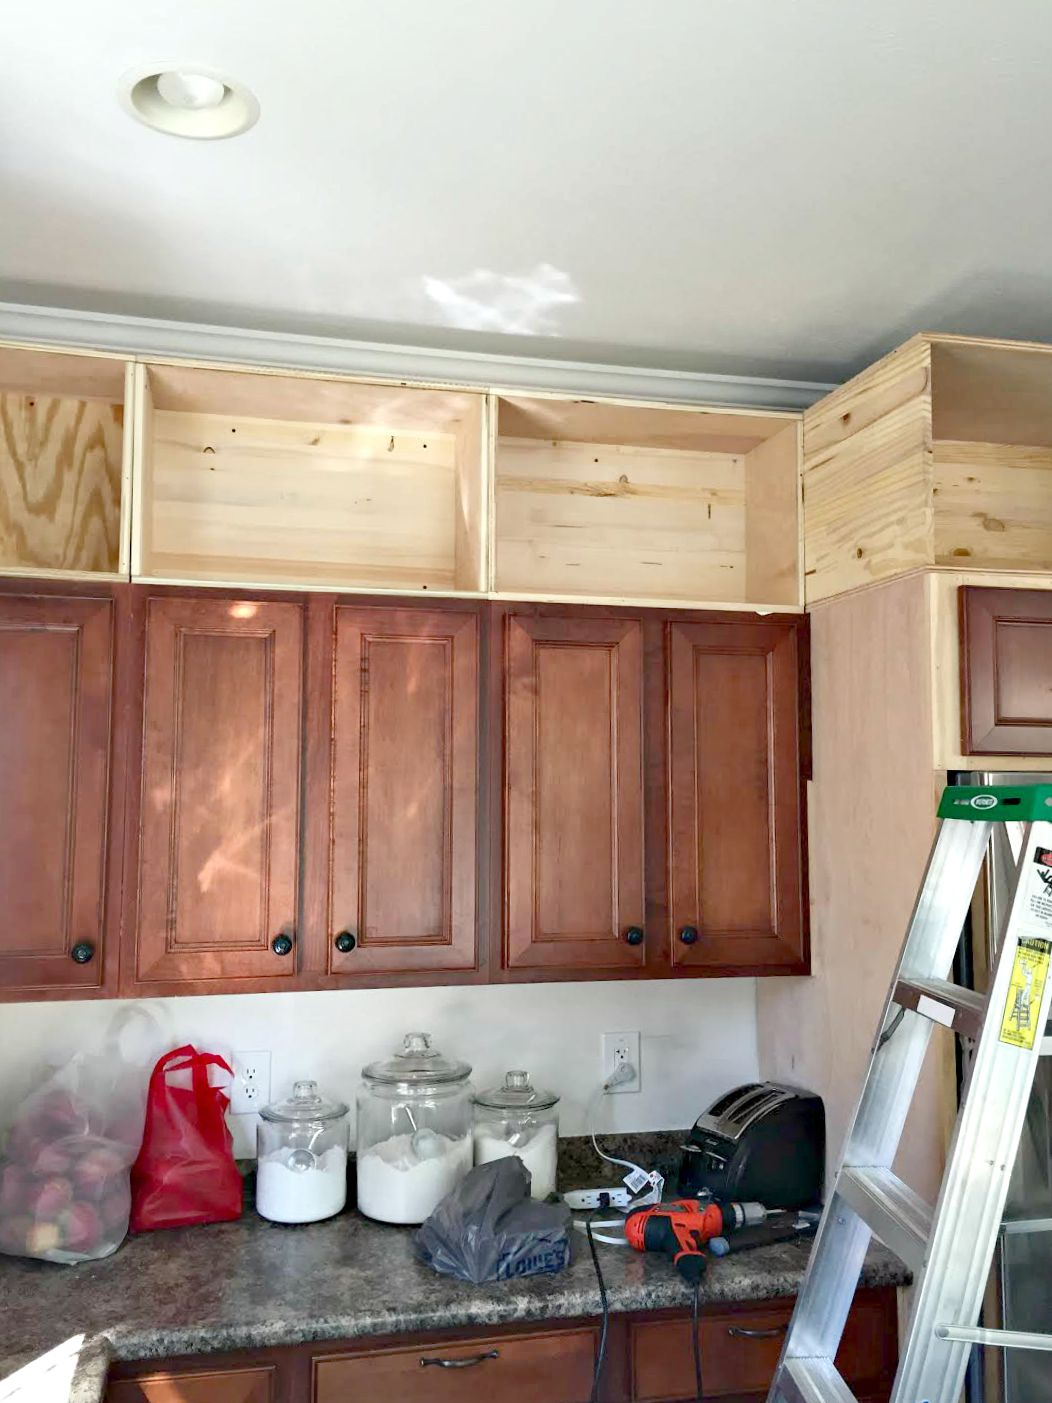 delightful Adding Cabinets To Existing Kitchen #5: adding cabinets above cabinets